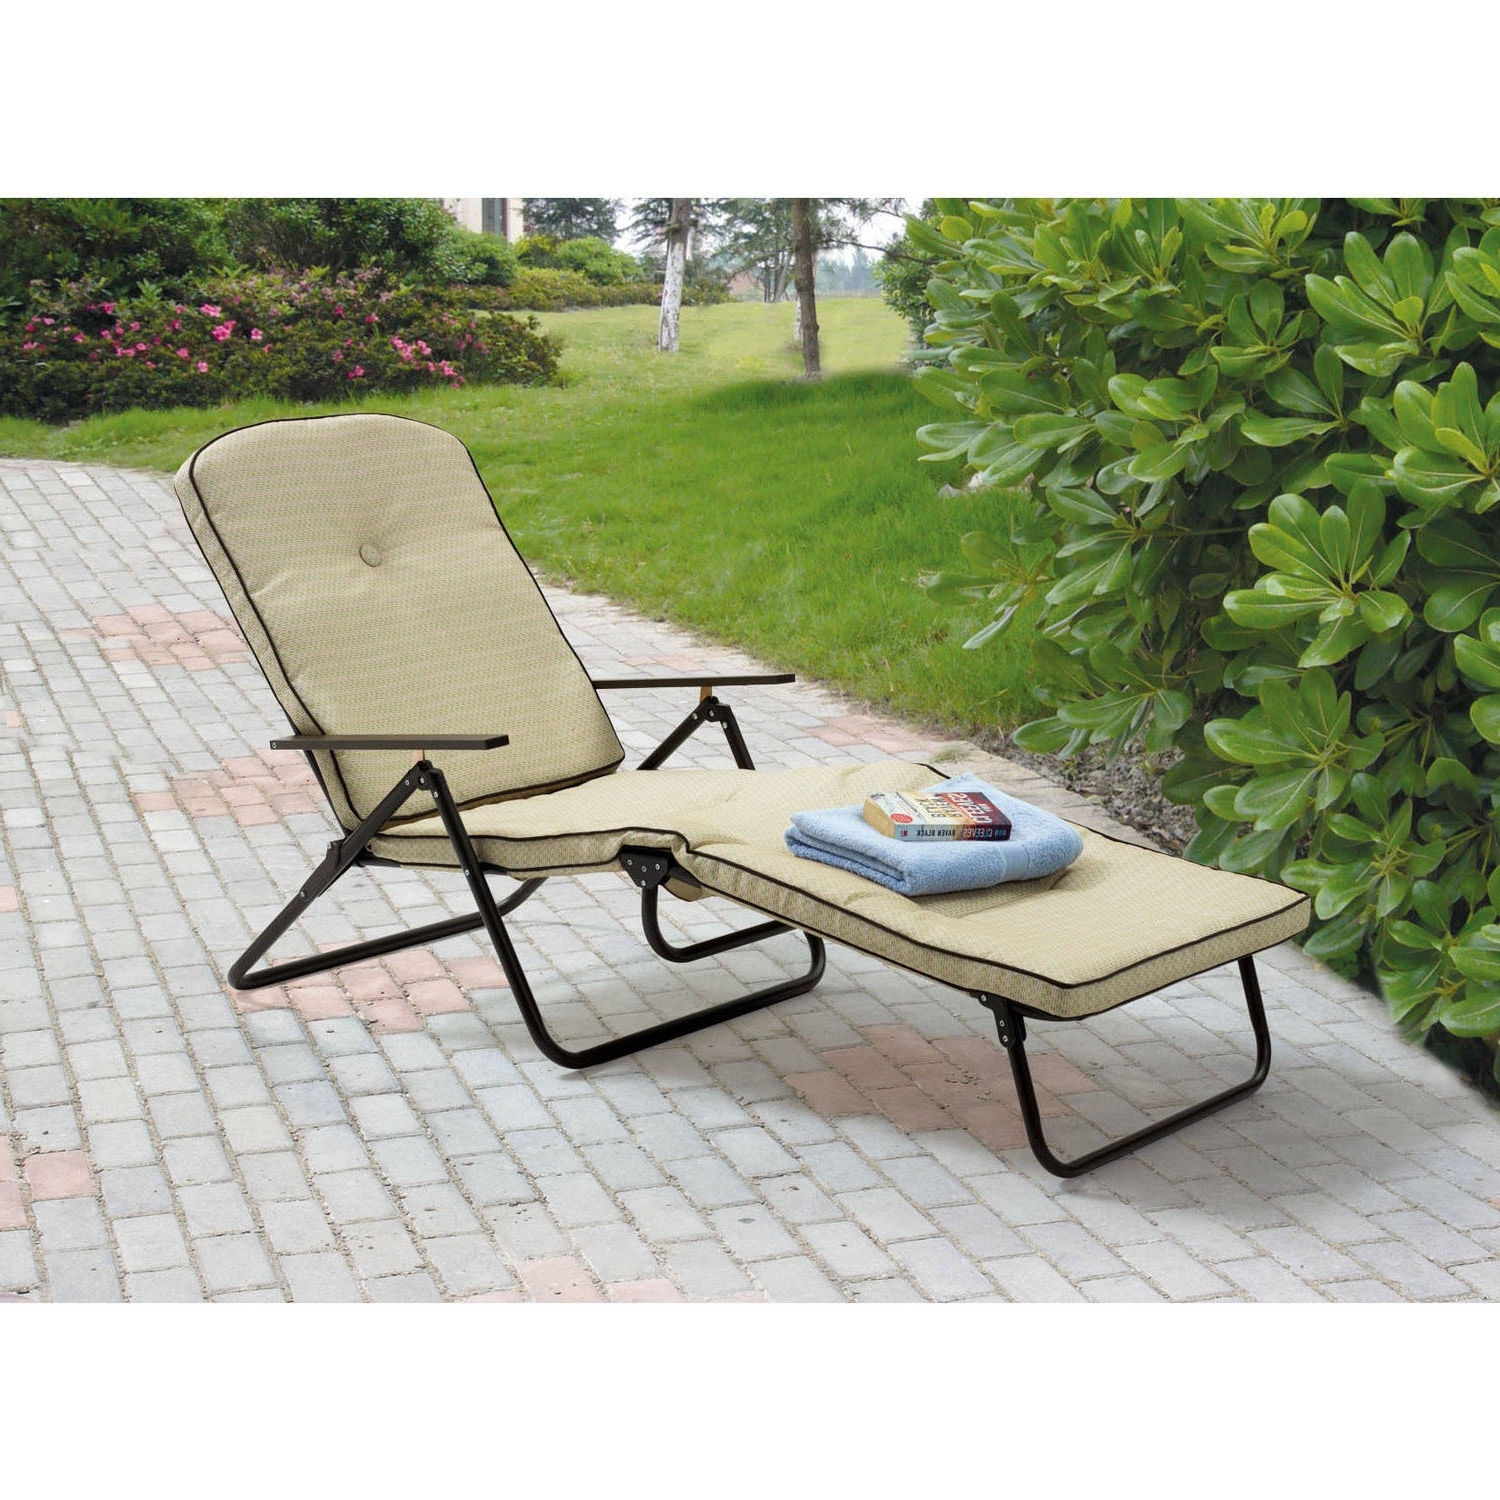 Popular Mainstays Sand Dune Outdoor Padded Folding Chaise Lounge, Tan In Walmart Chaise Lounge Chairs (View 3 of 15)